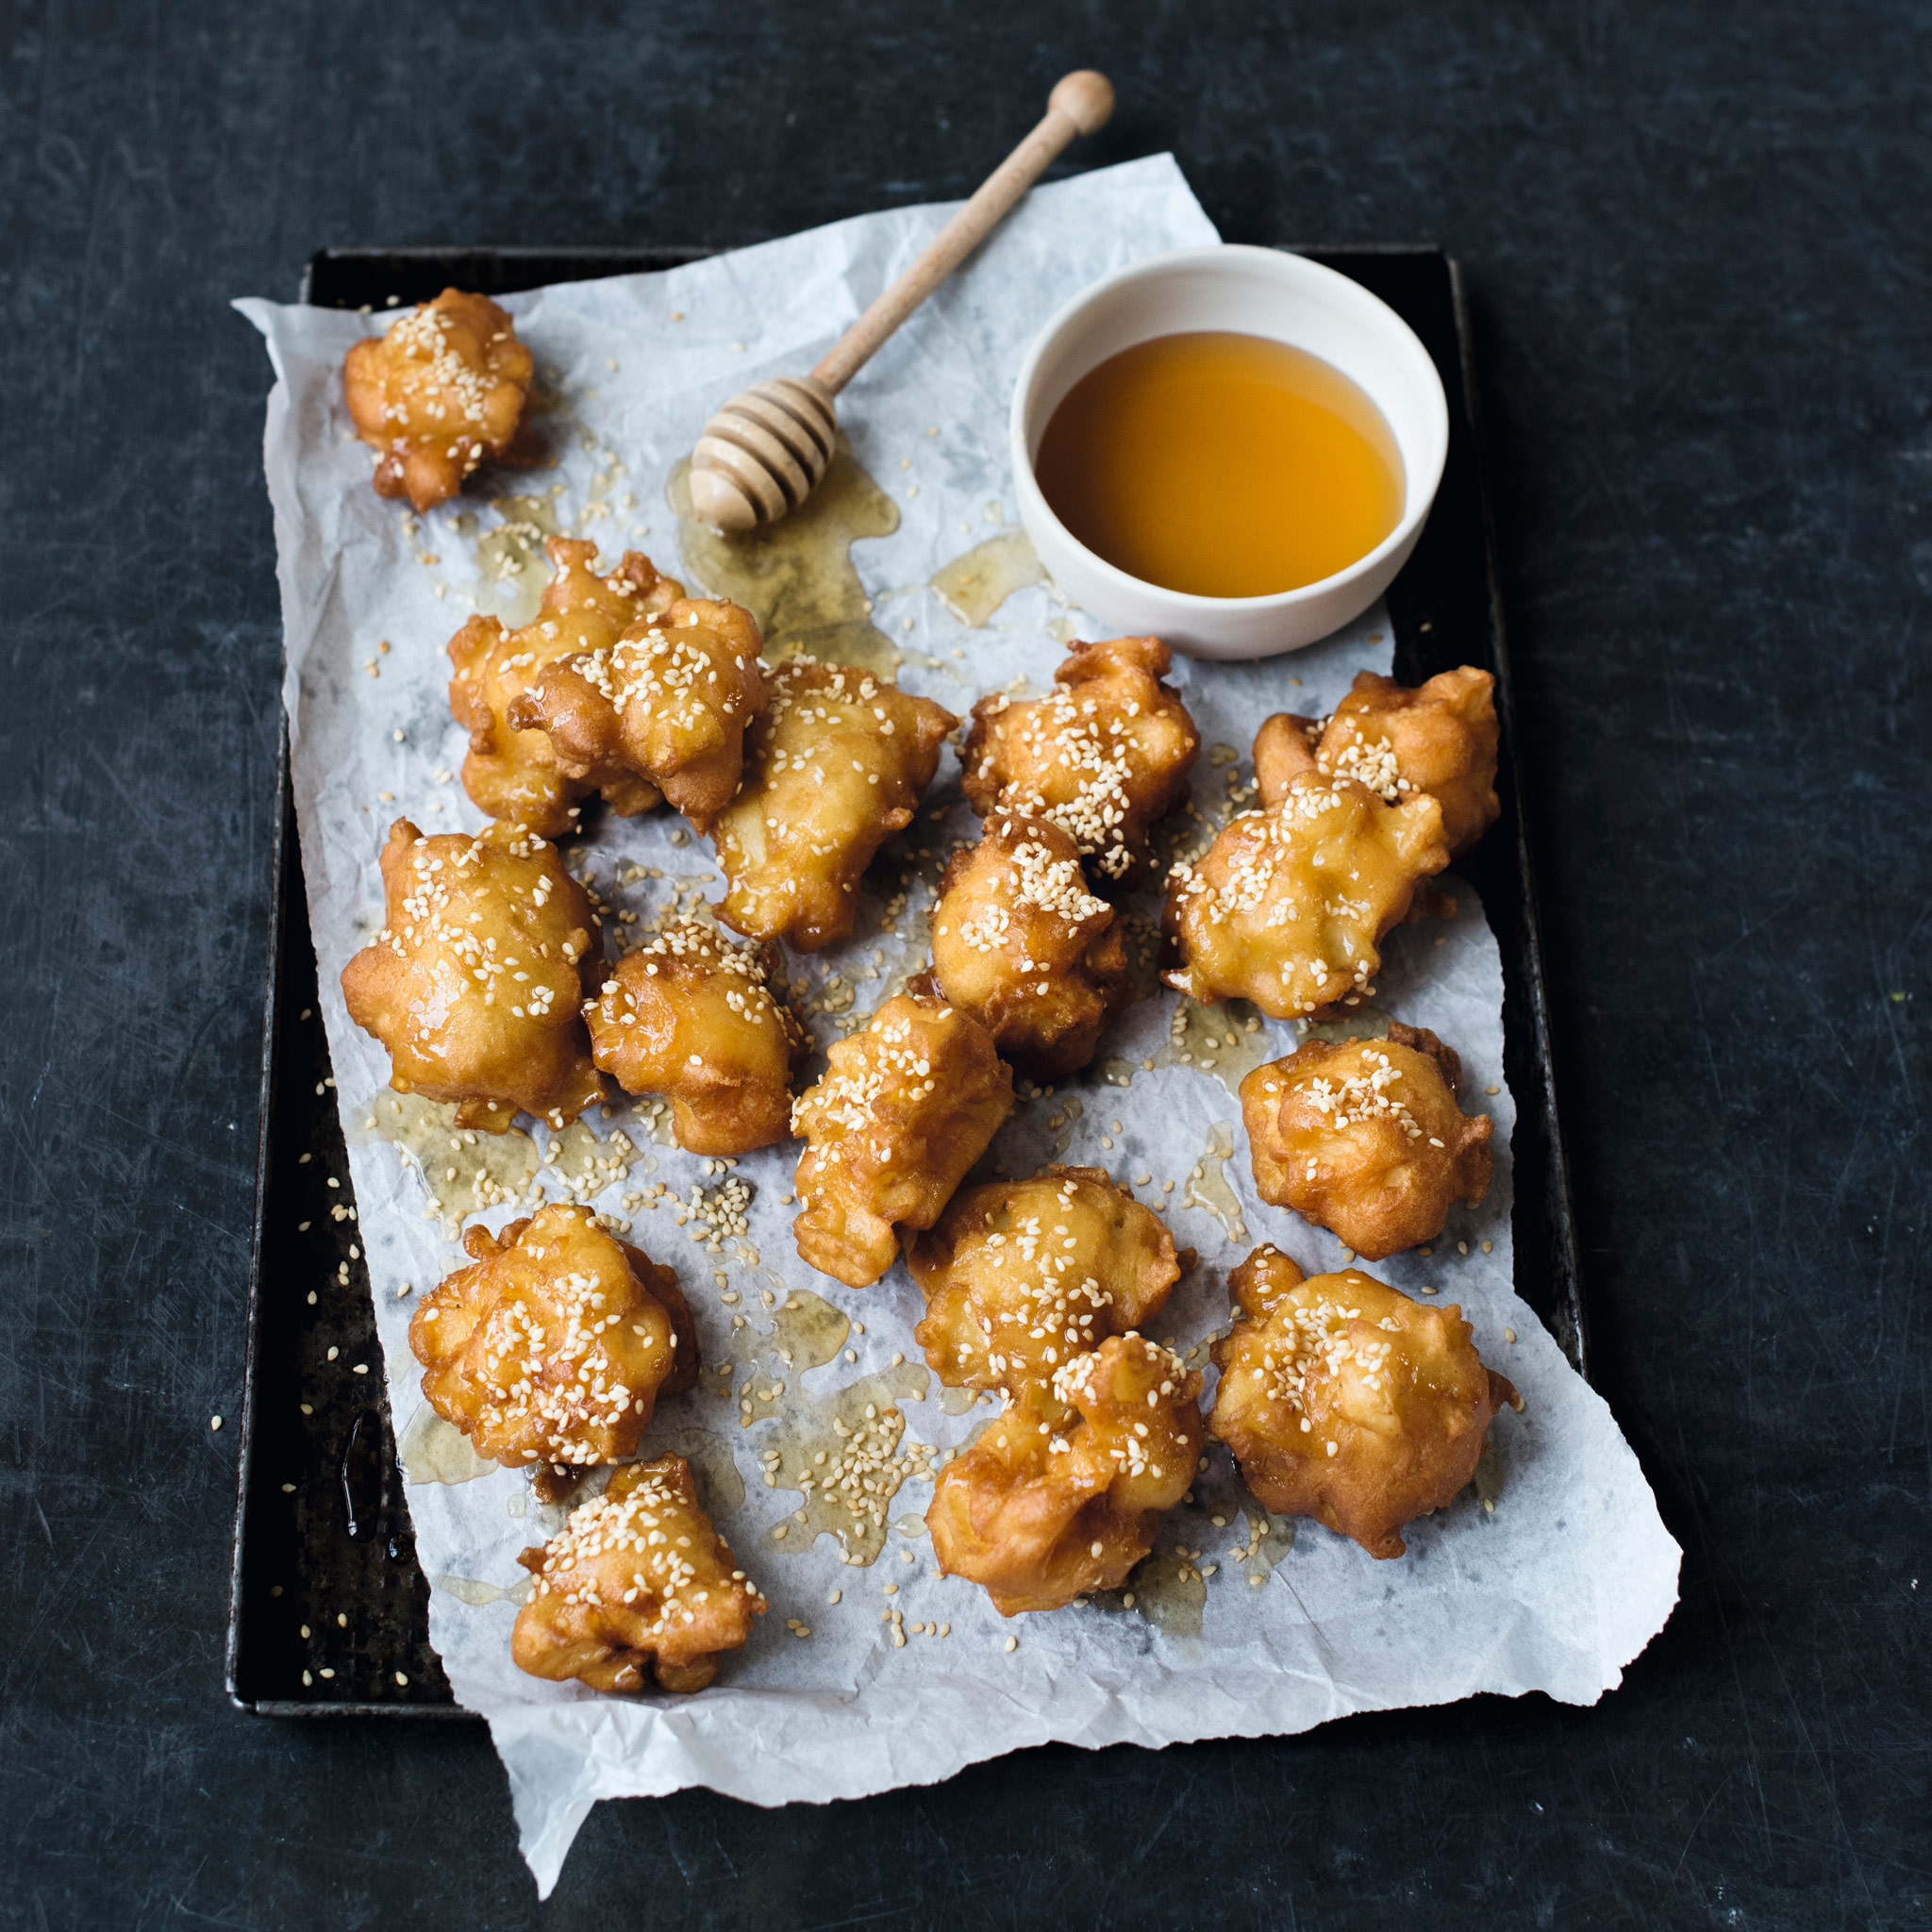 Martha's apple fritters with honey & sesame